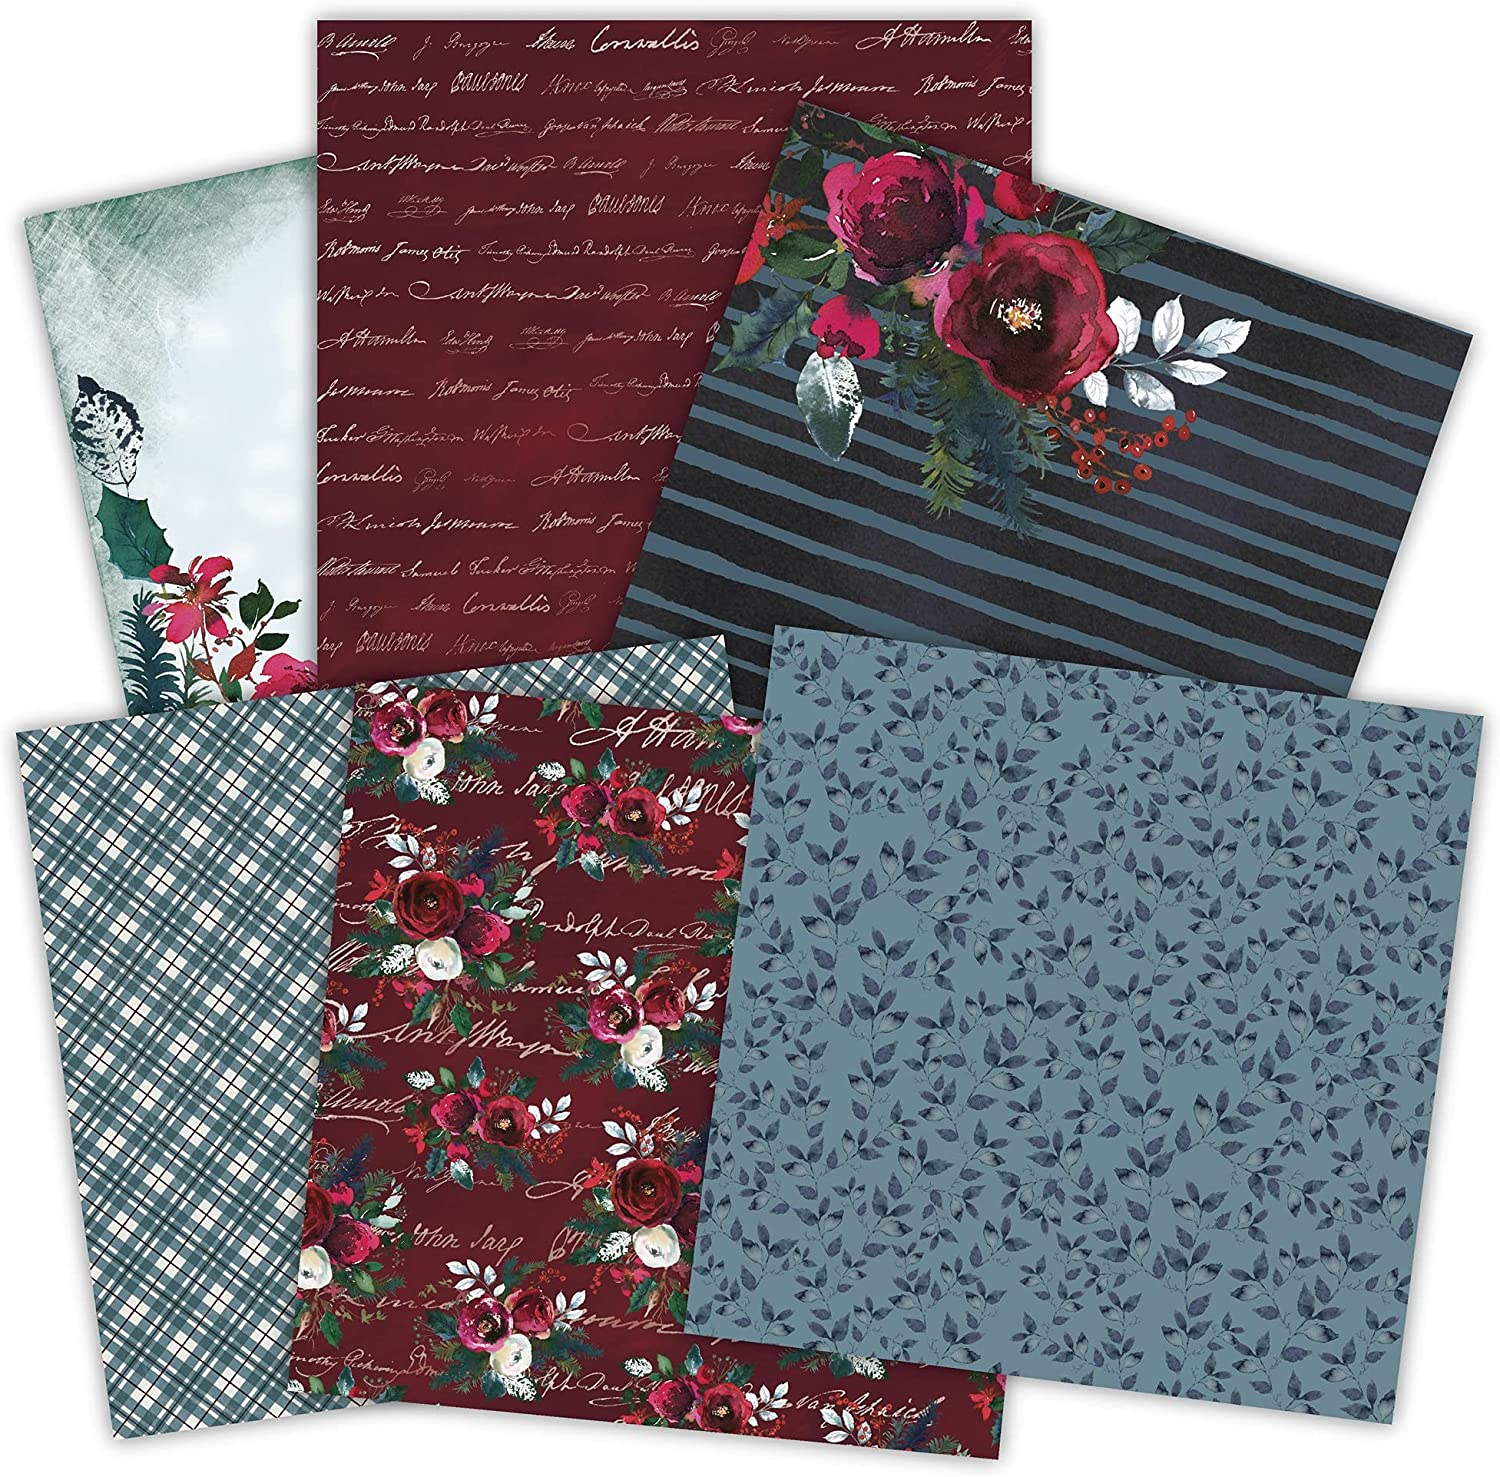 LTB DIY the scent of rose ha Scrapbooking paper 5 ☆ very popular 24sheets pack Oakland Mall